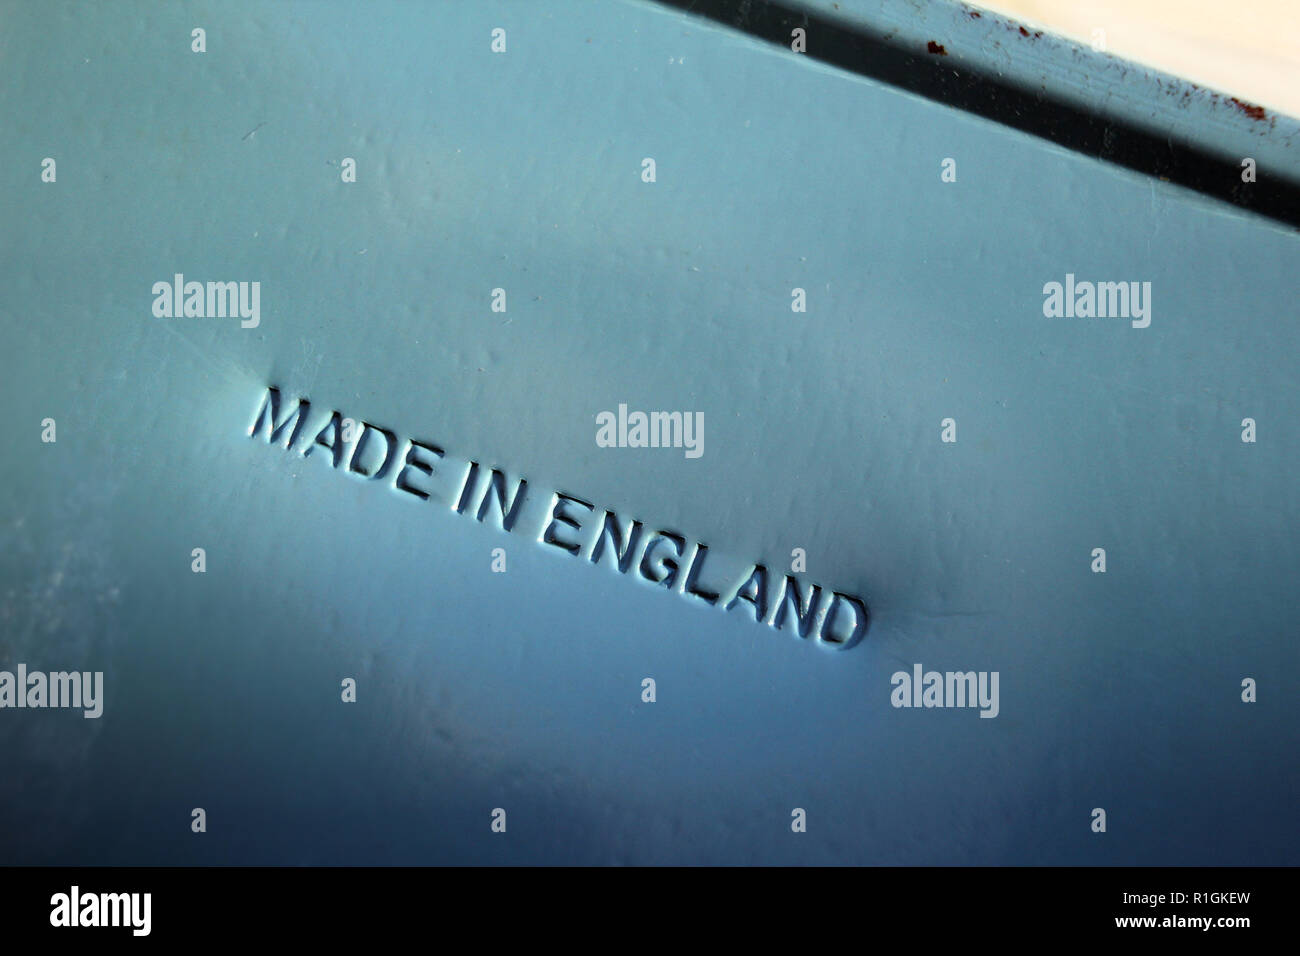 Made in england cast in metal sheet - Stock Image